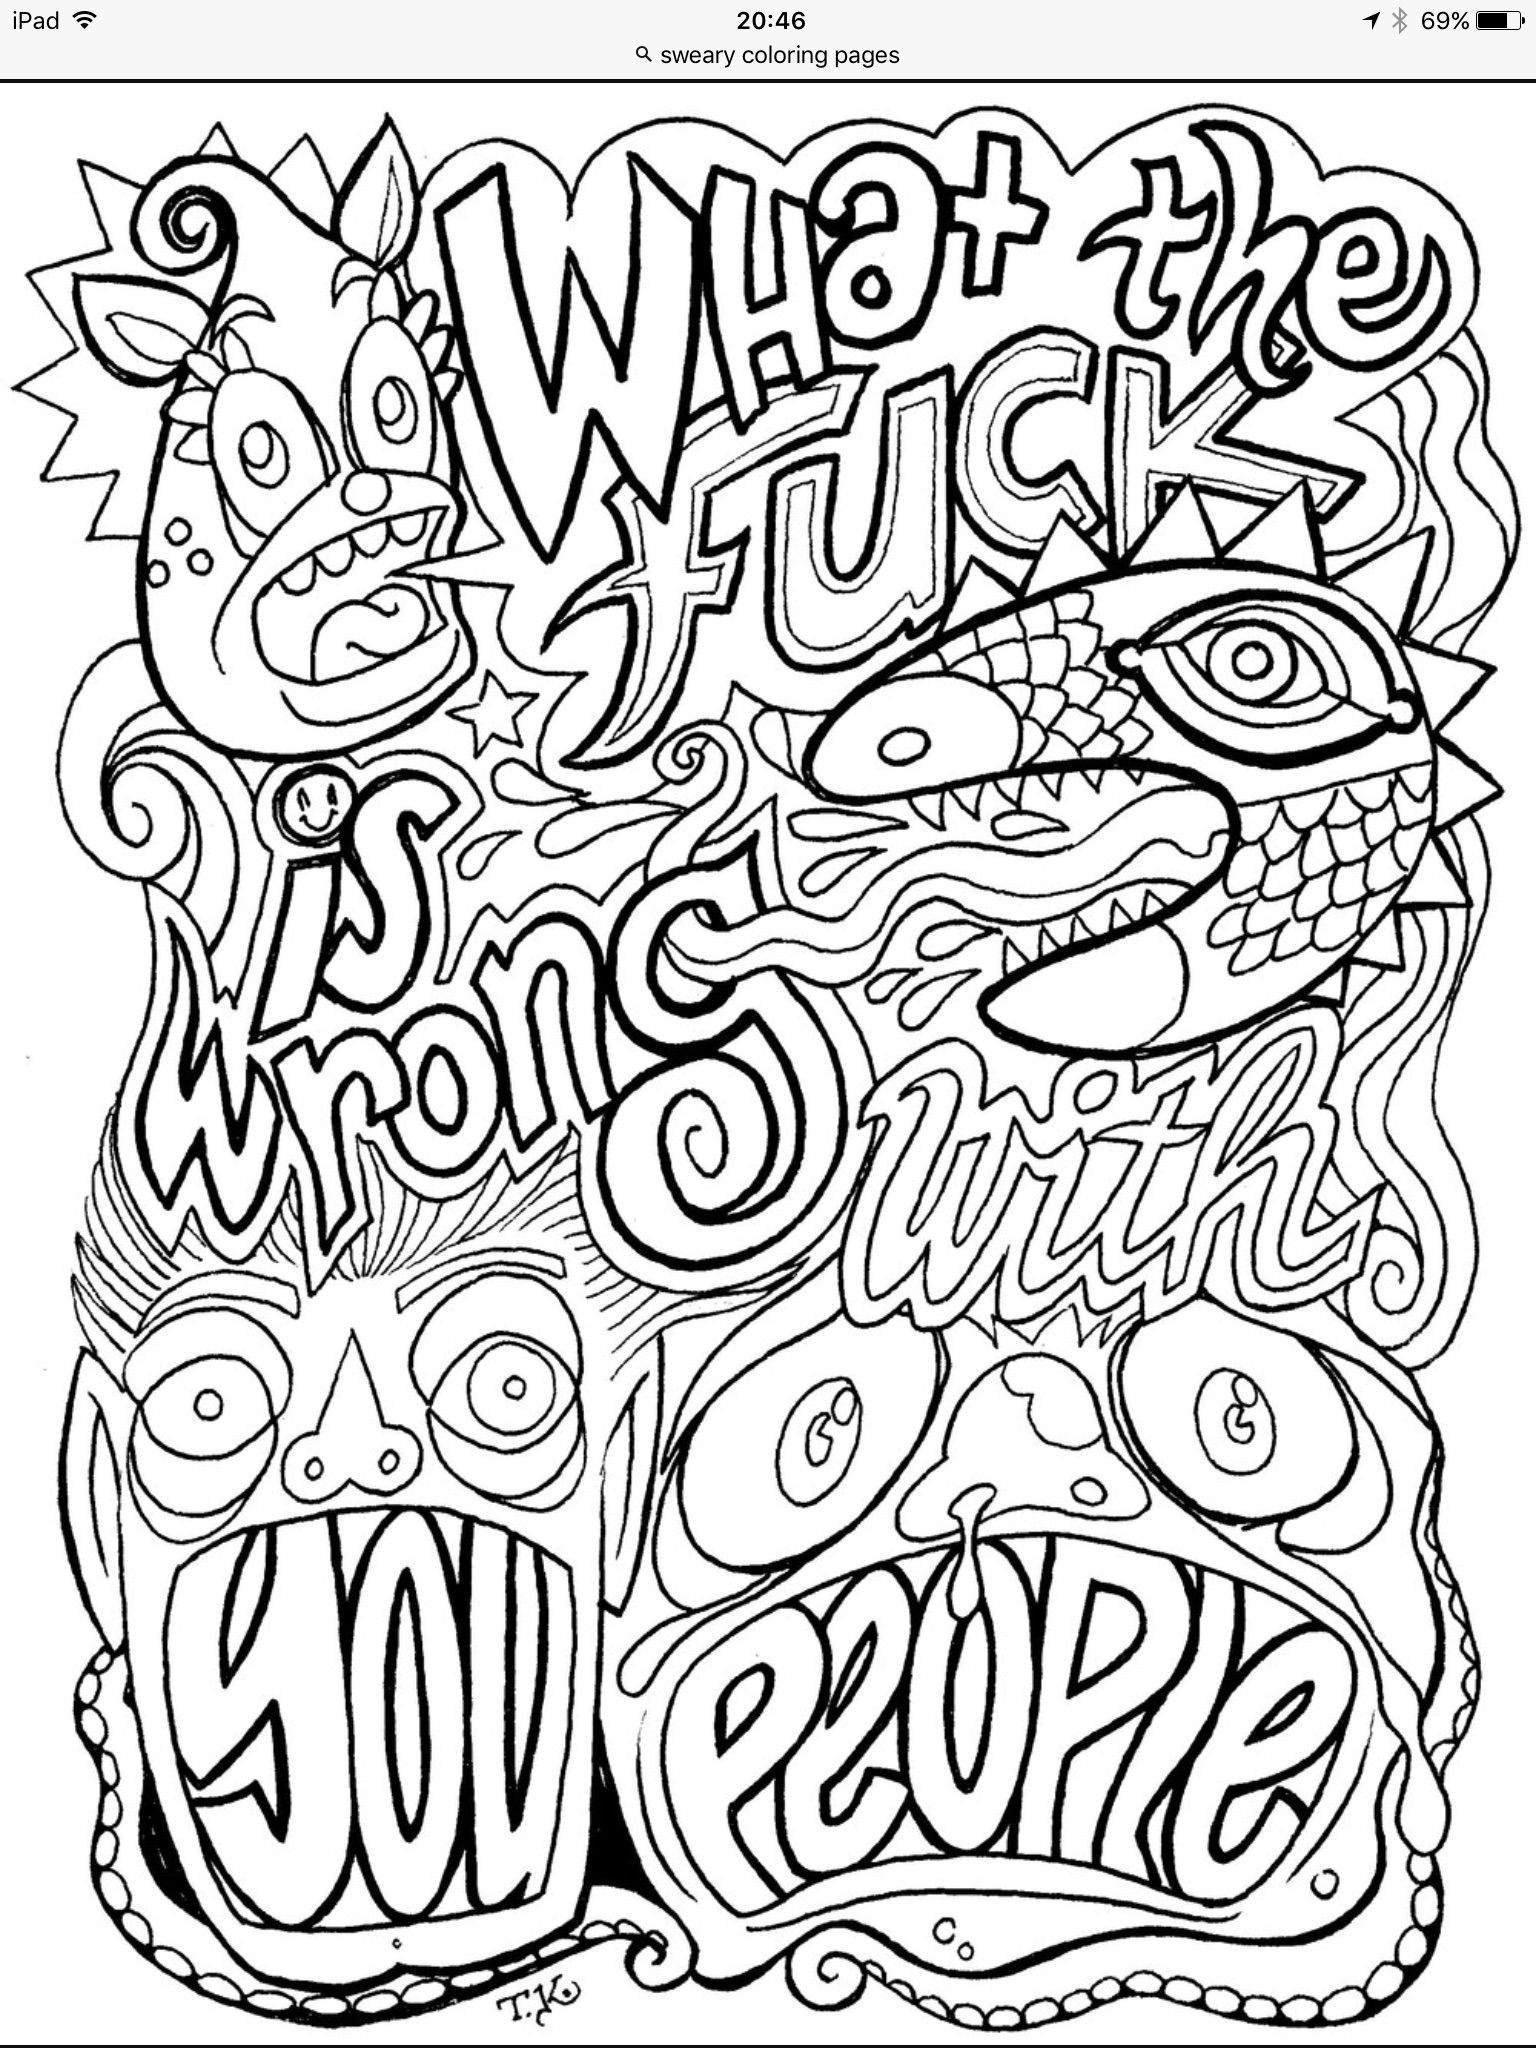 What The Um Color Pags Swear Word Coloring Book Words Coloring Book Coloring Pages In 2021 Words Coloring Book Swear Word Coloring Swear Word Coloring Book